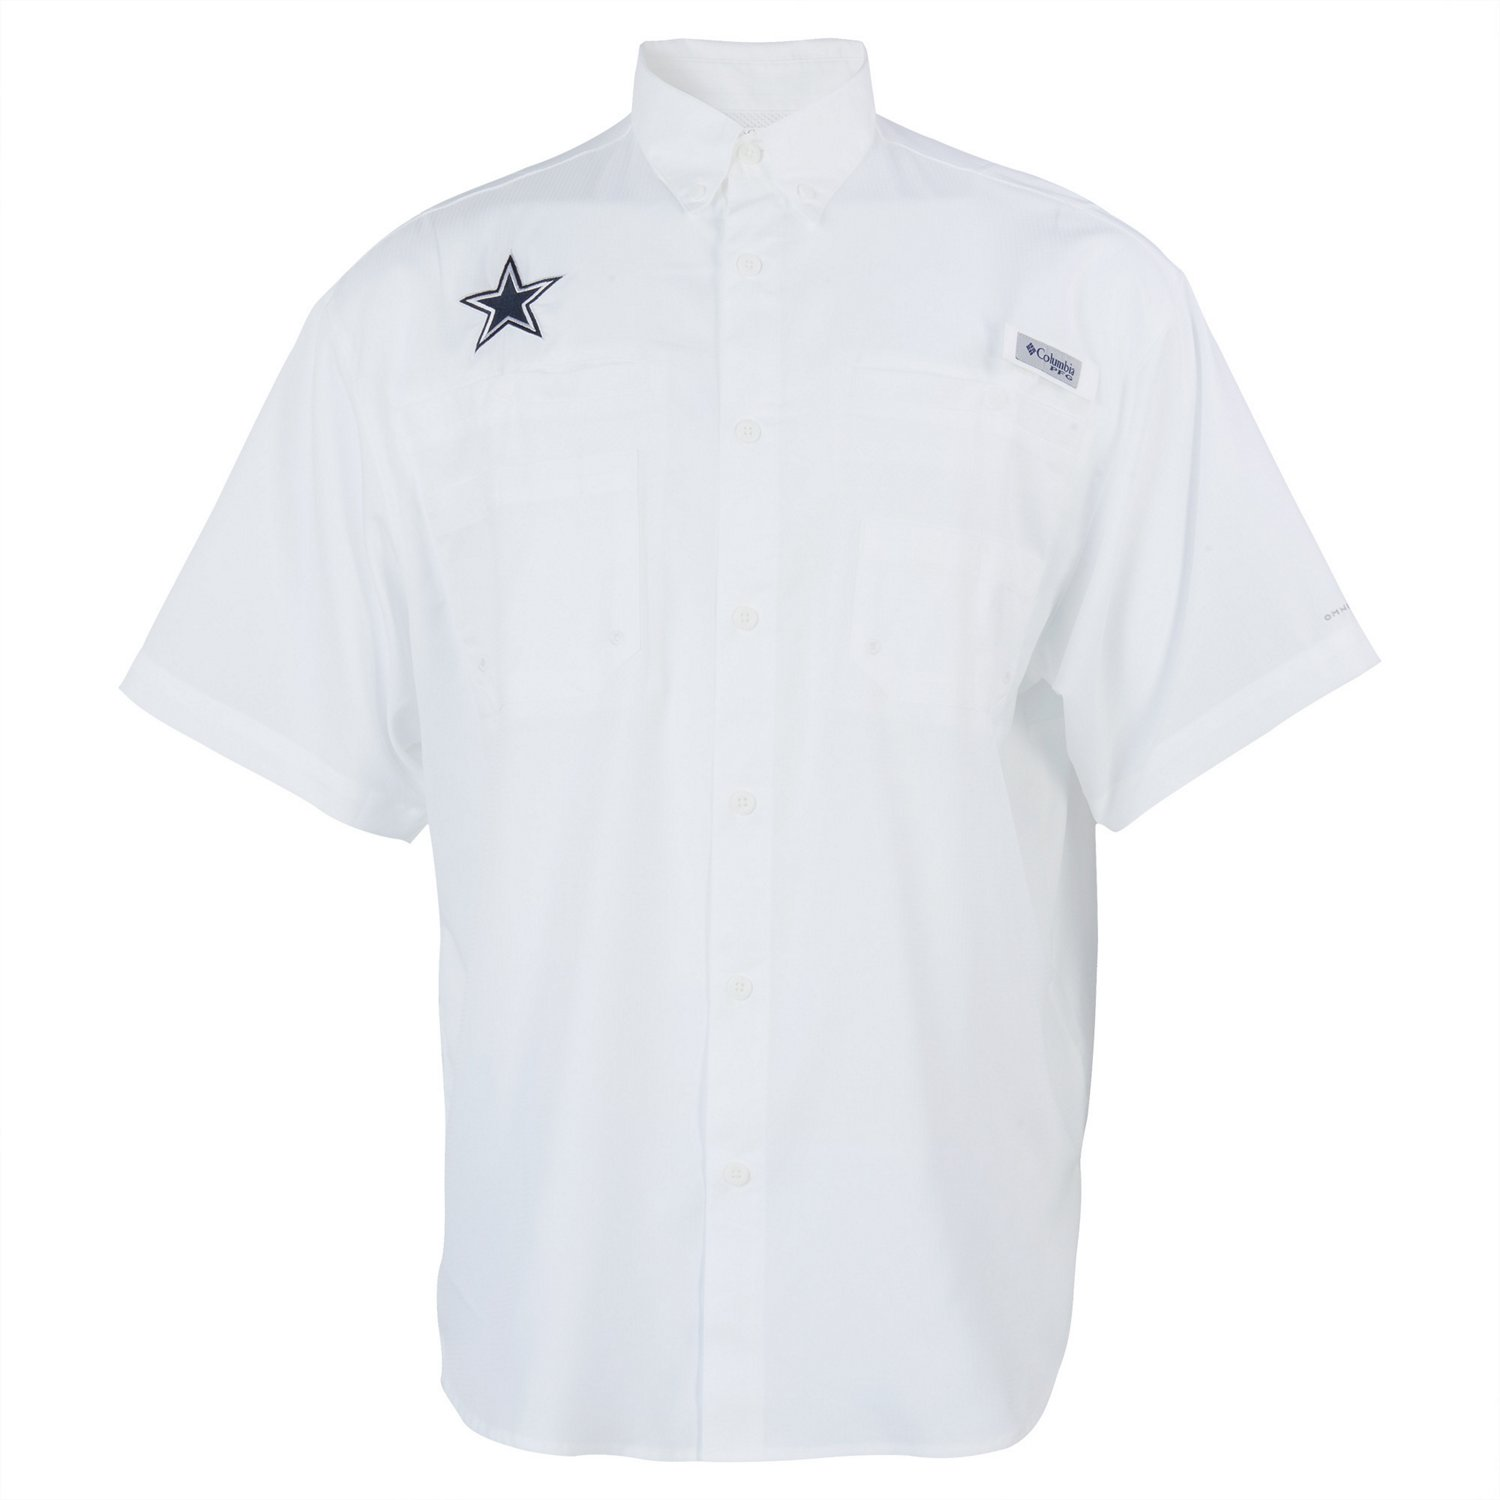 d8ecad77e Display product reviews for Columbia Sportswear Men s Dallas Cowboys PFG  Tamiami Fishing Shirt